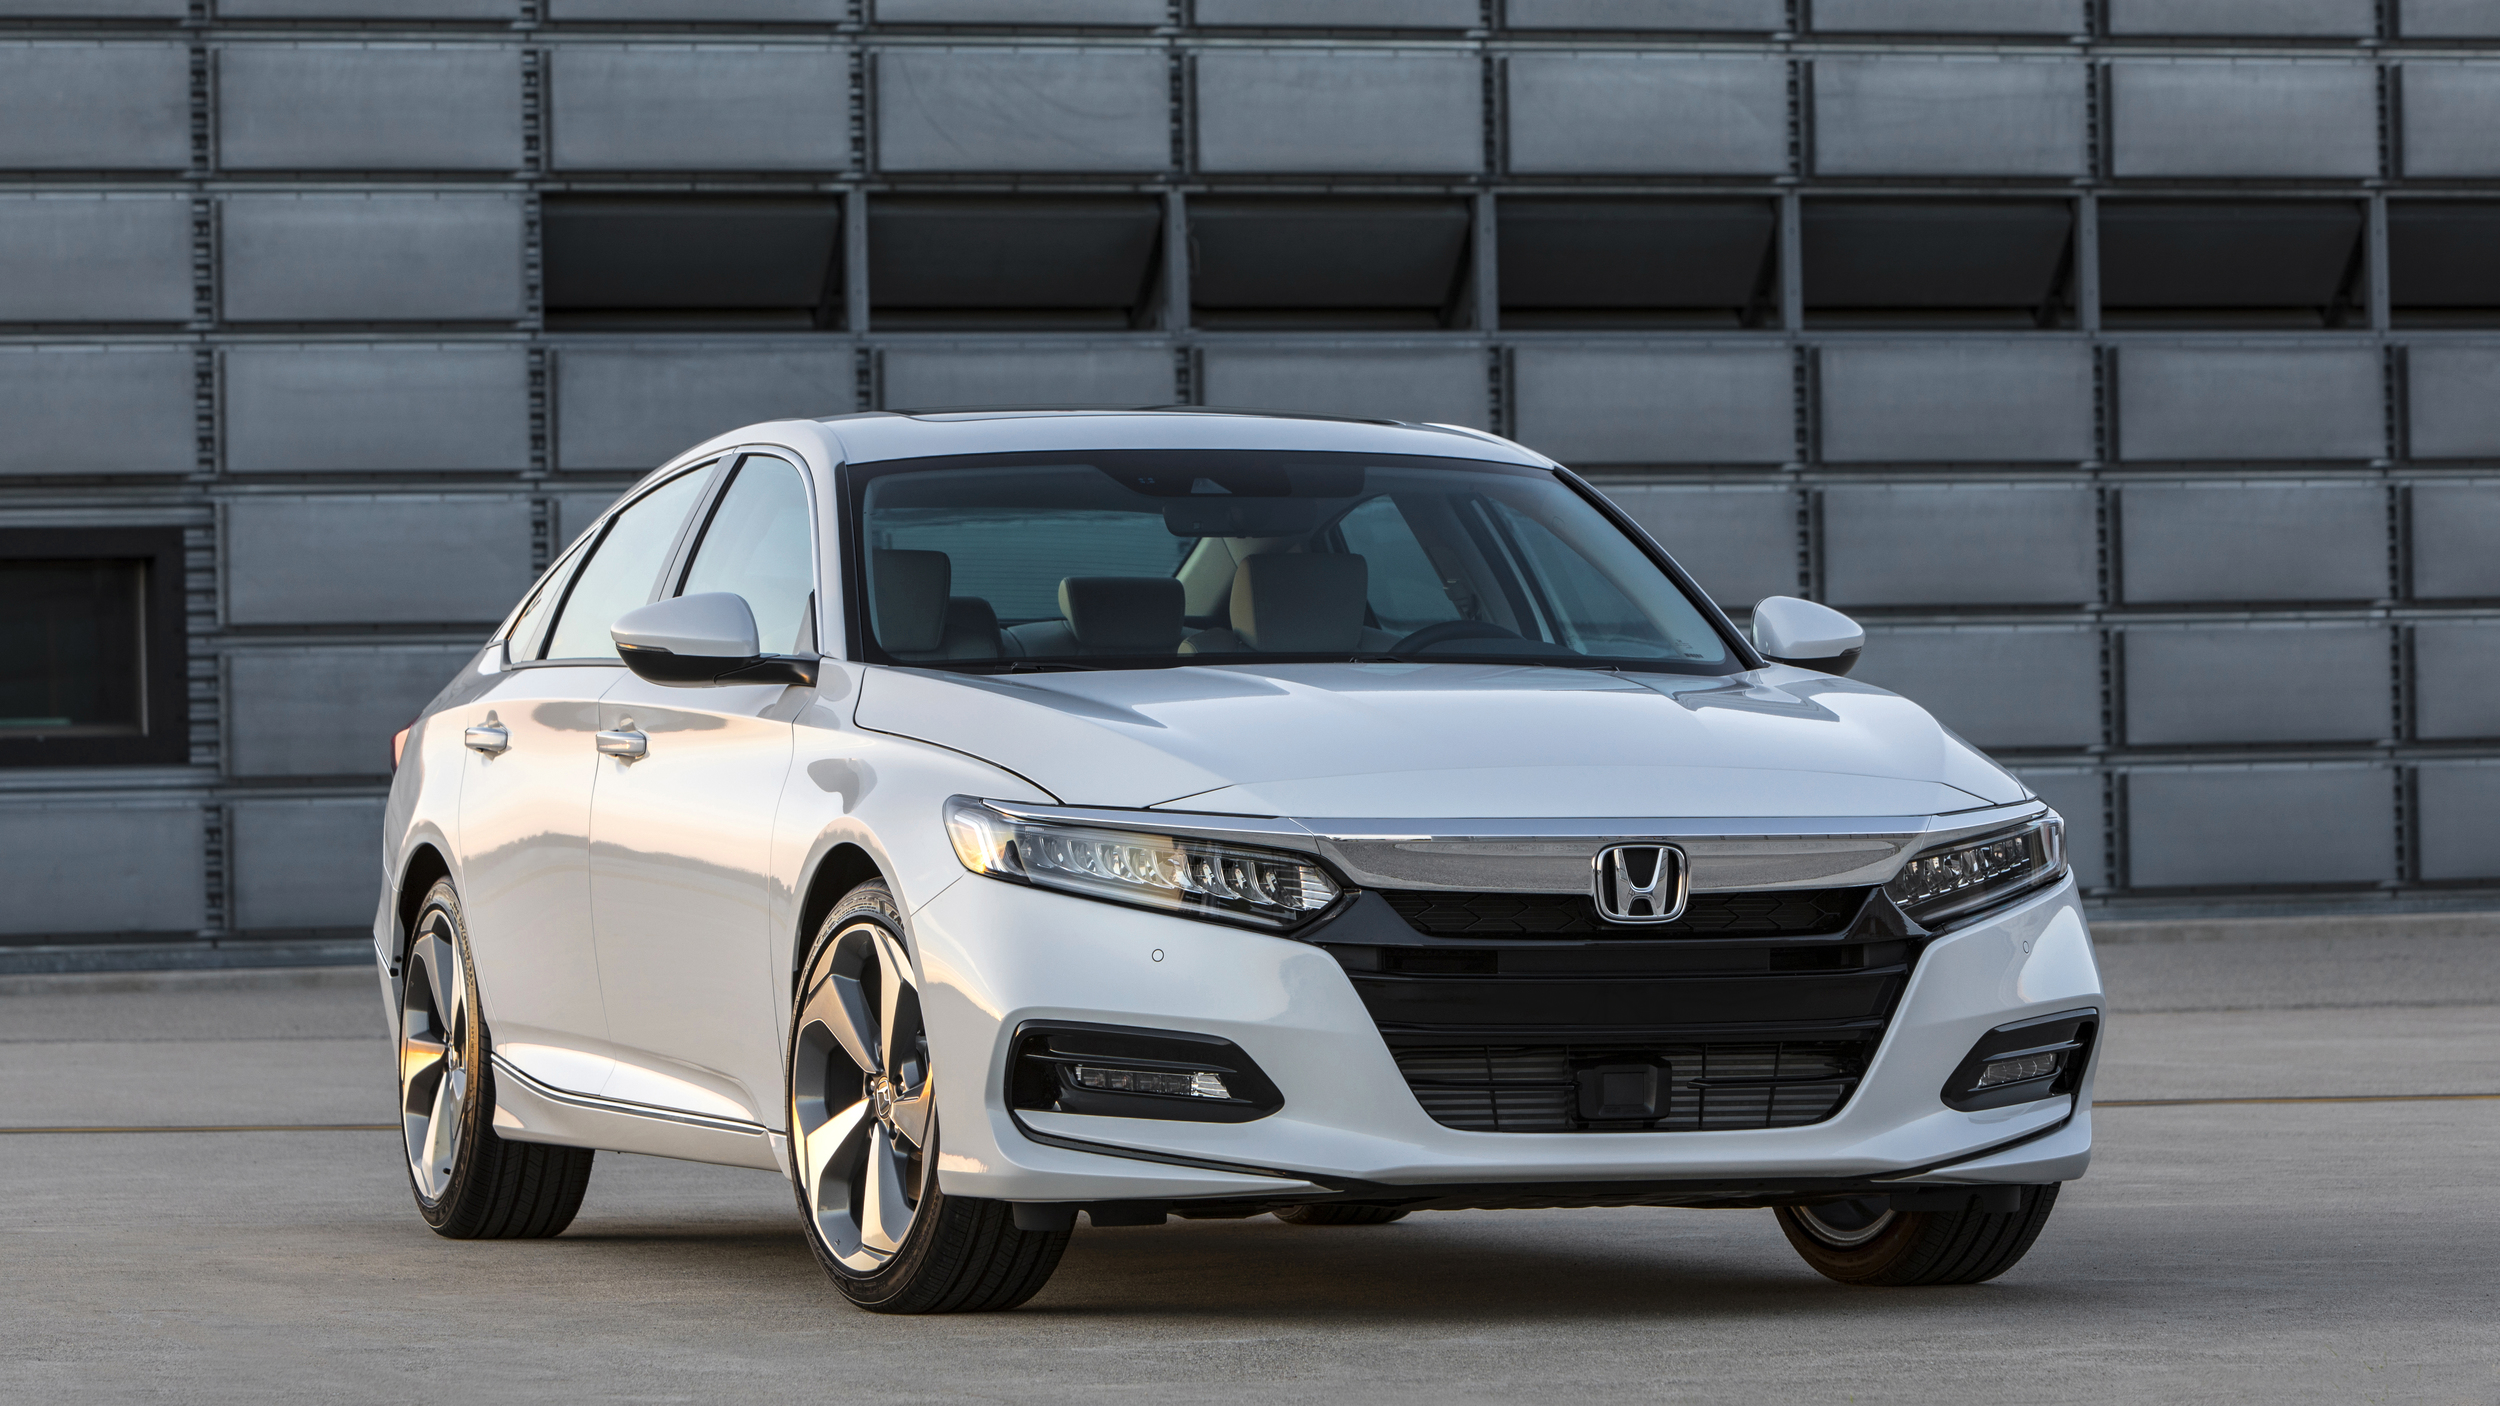 Usa honda accord 2018 novit auto e presentazione for Honda accord 2018 price in usa